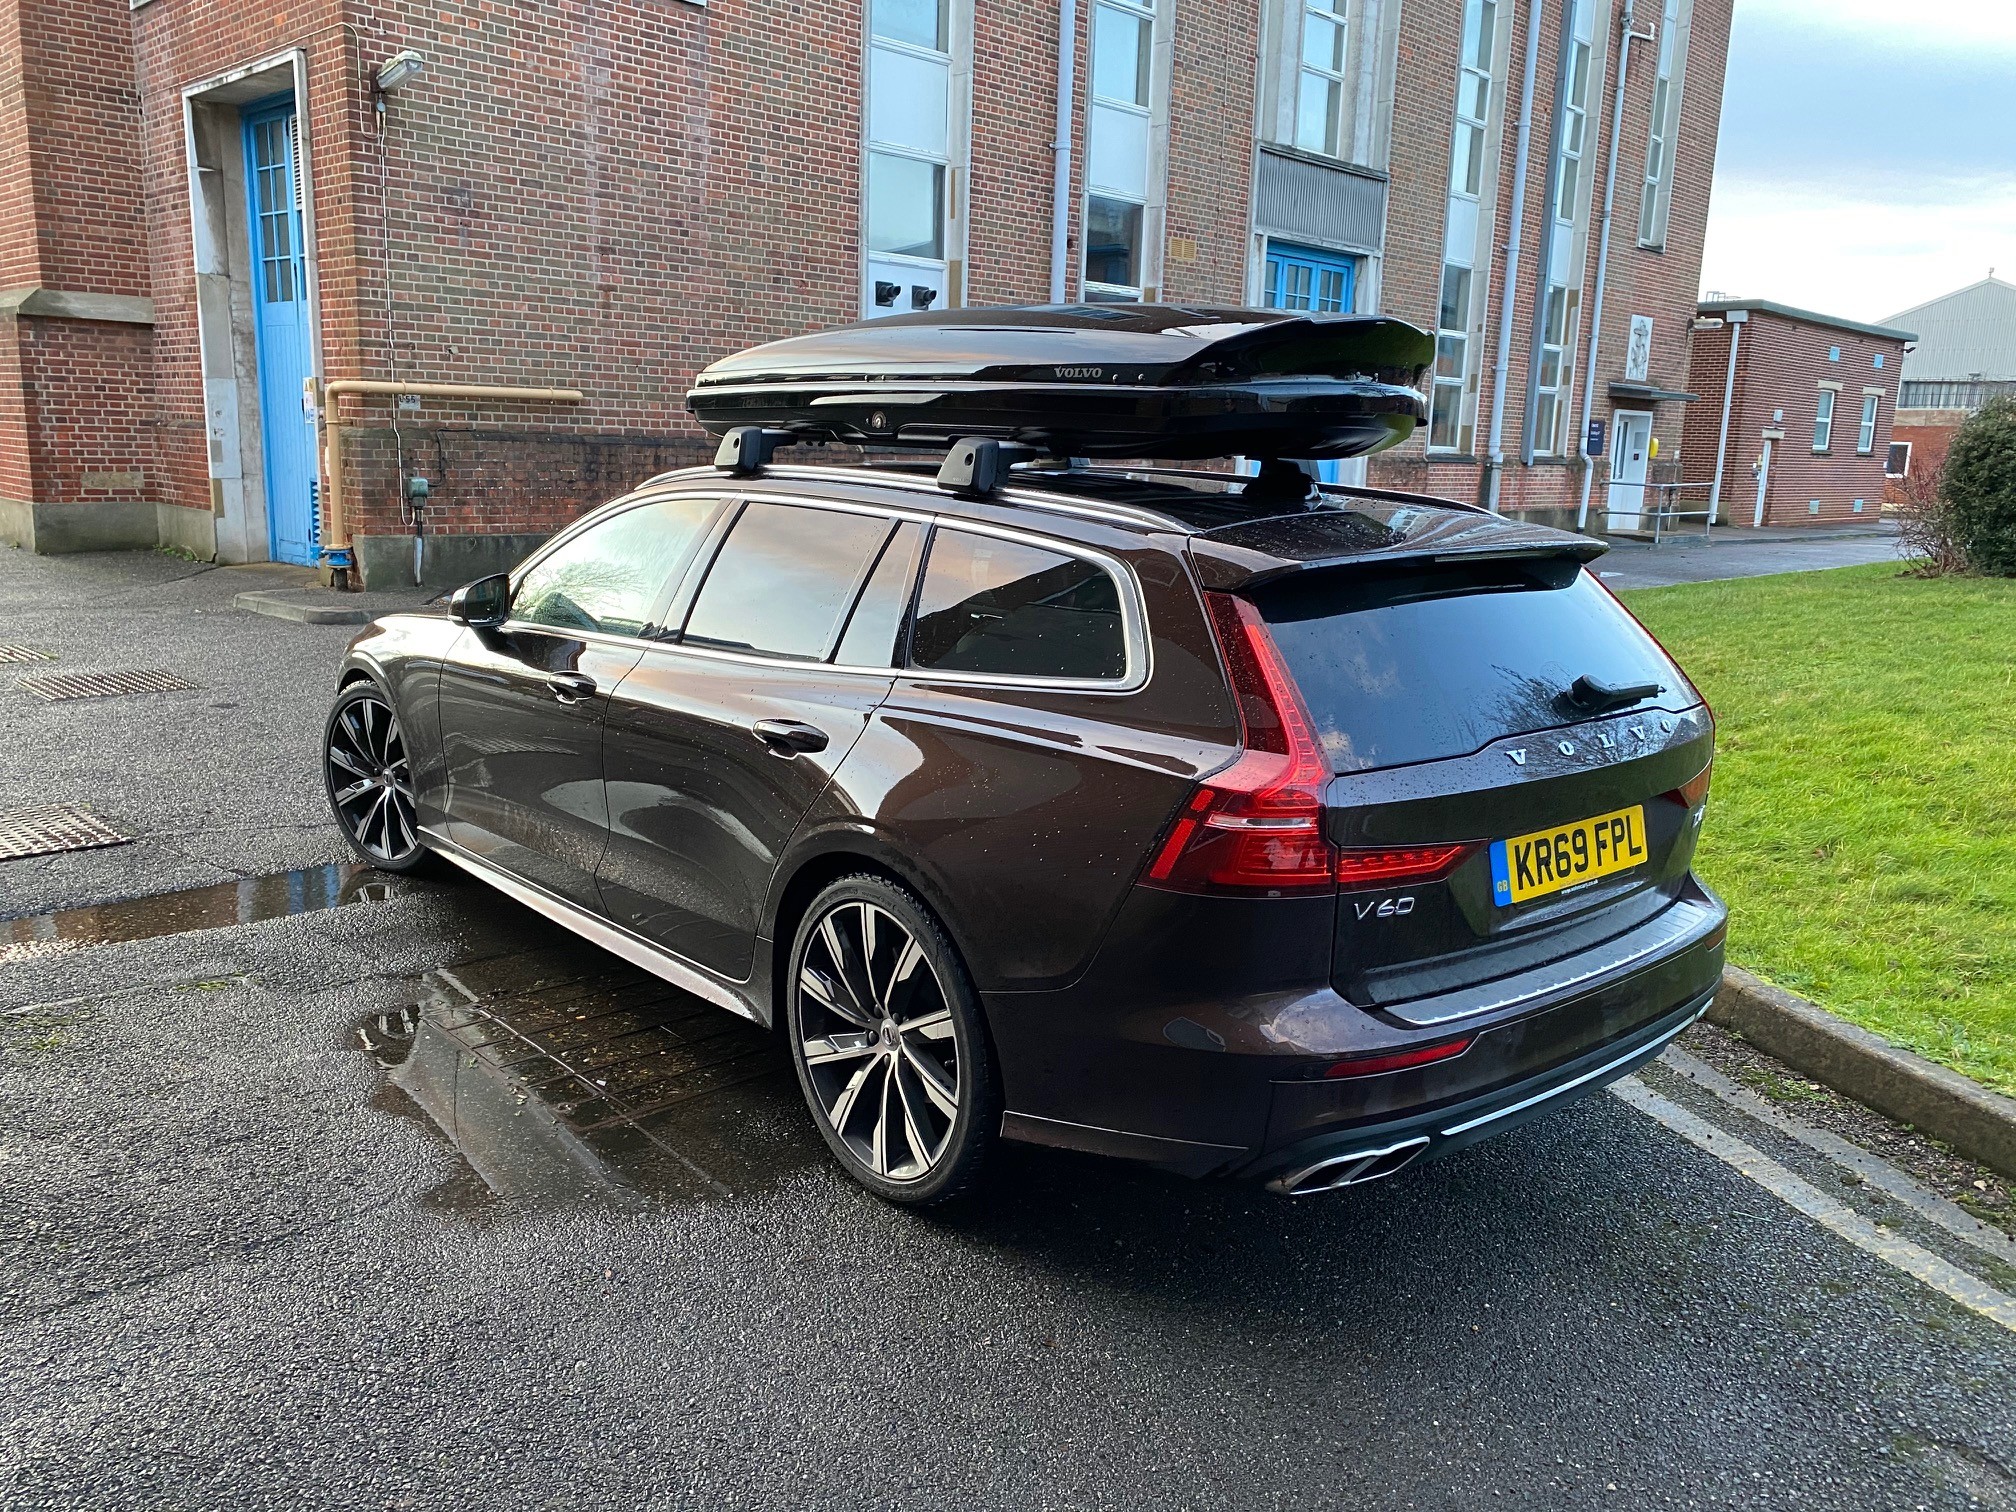 The sleek roofbox does little to diminish the Volvo's sleek looks